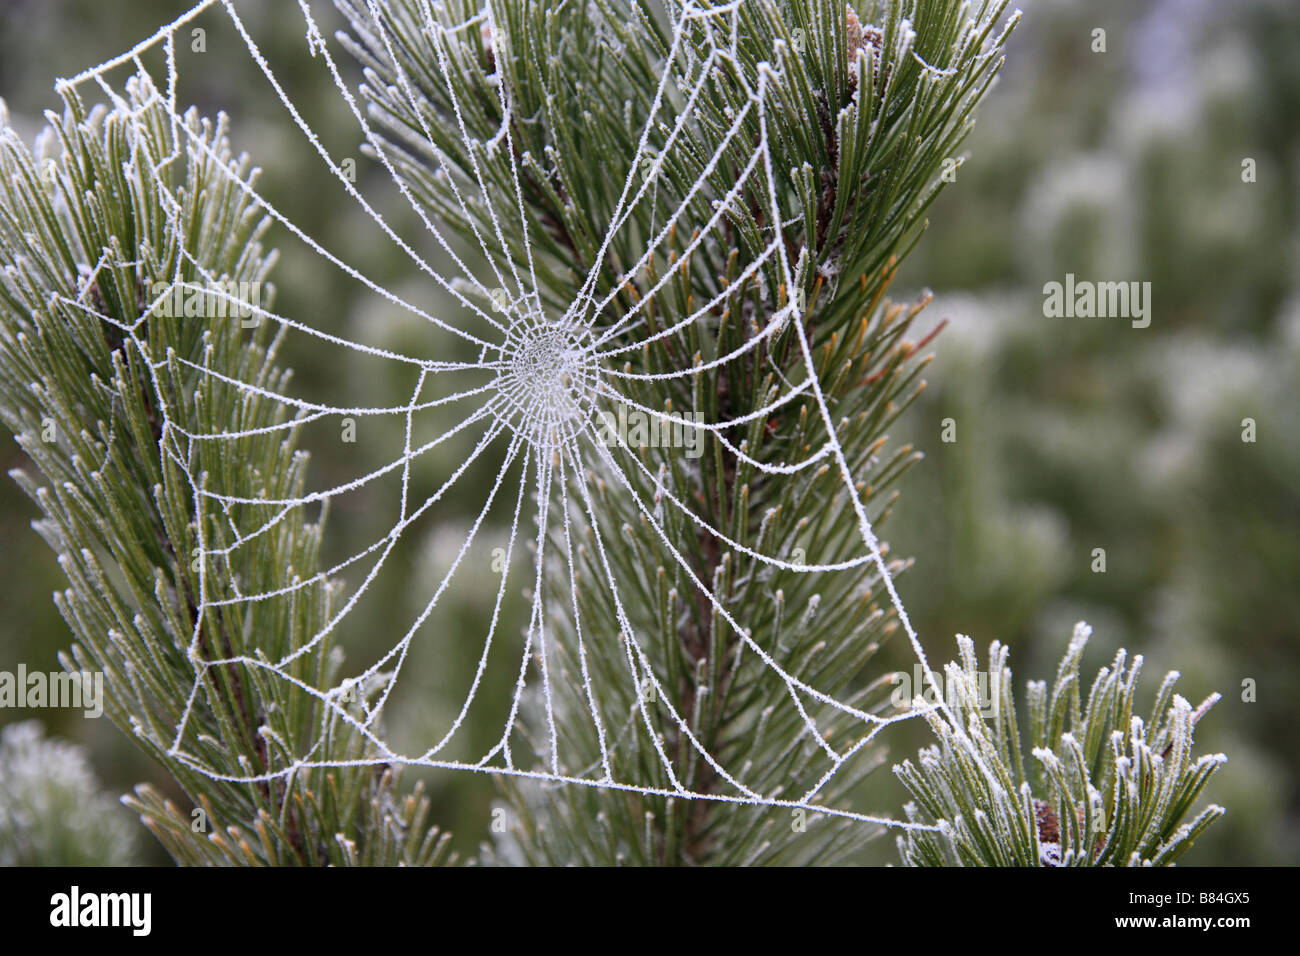 Frozen cobweb on a Scots Pine fir tree. - Stock Image